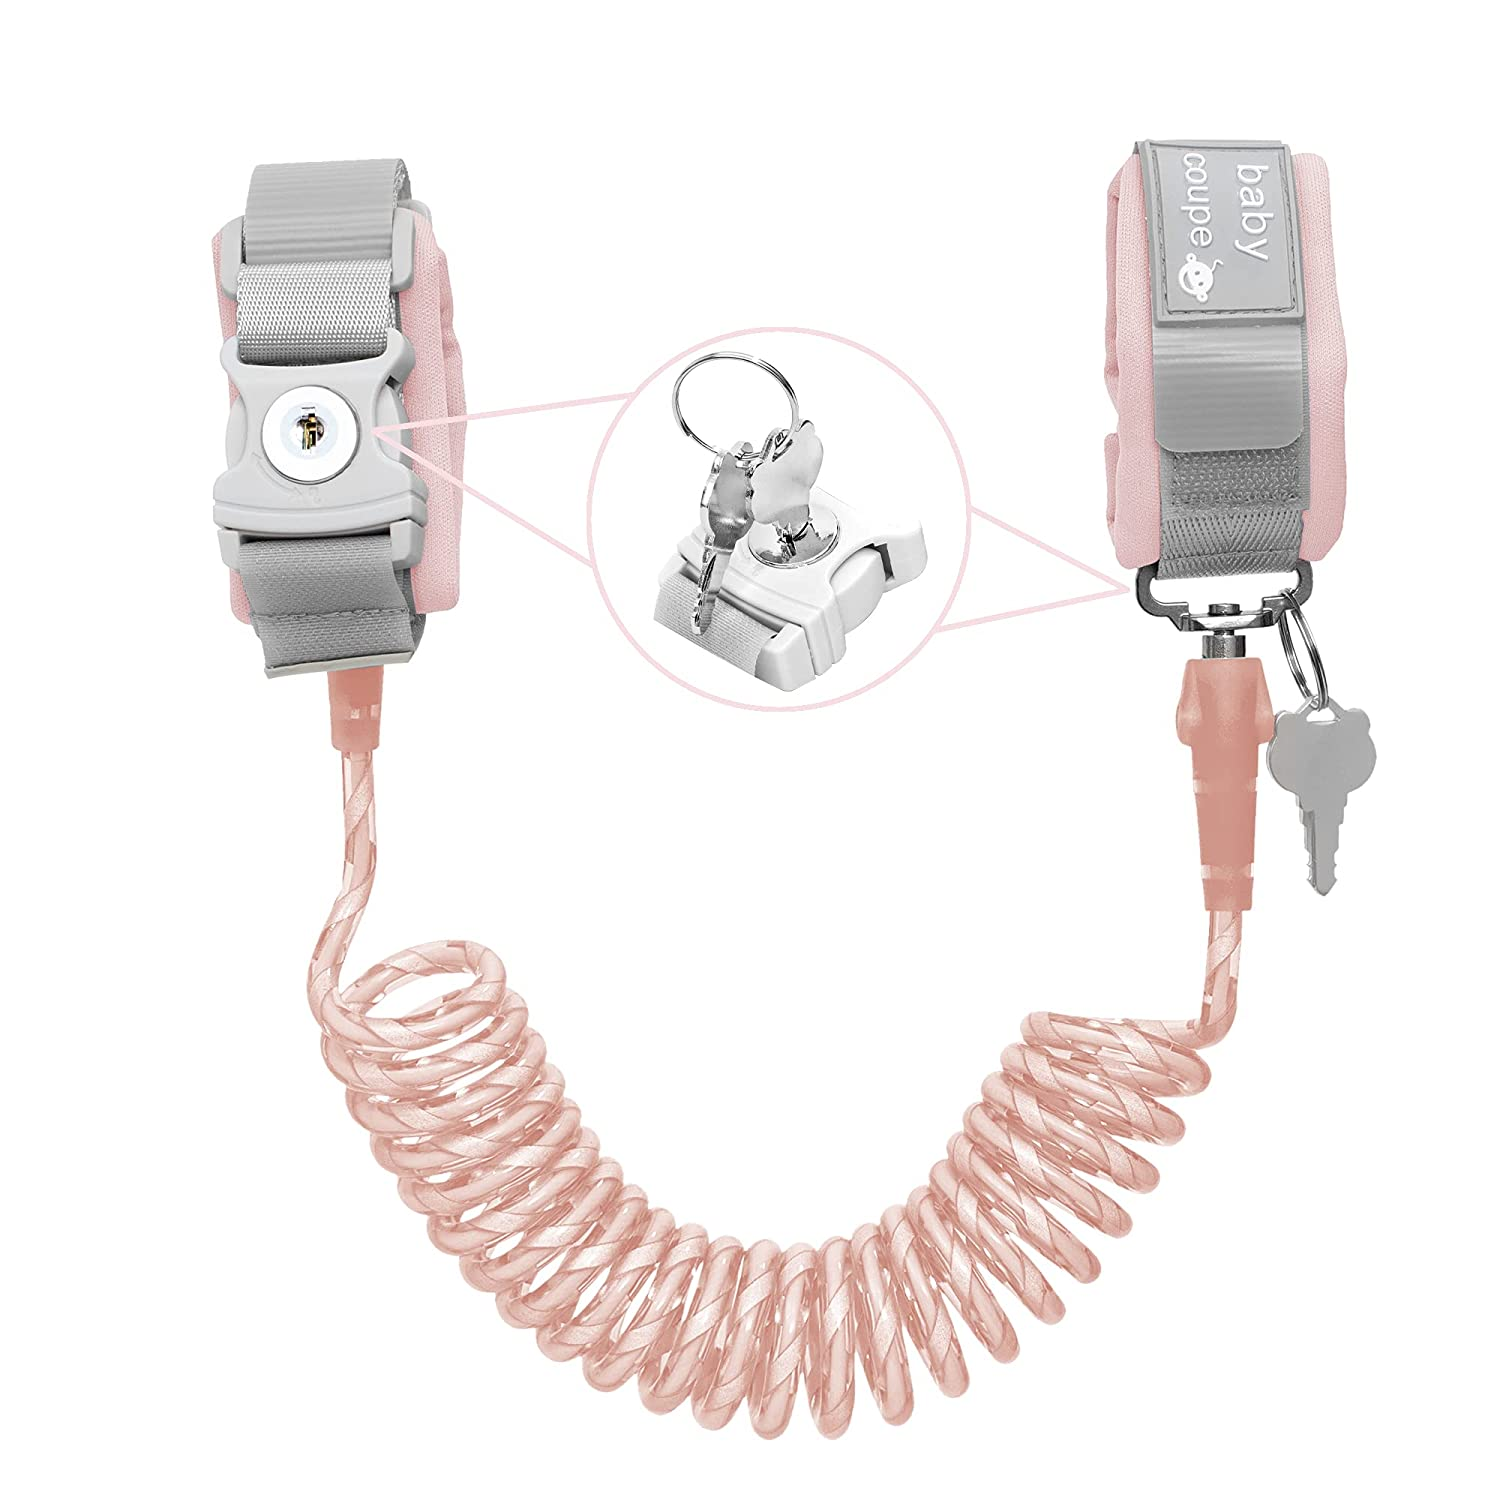 Toddler Harness Walking Leash- Child Anti Lost Wrist Link - Child Safety Harness - Upgrade with Reflective(6.5ft) - for Boys and Girls to Disneyland, Zoo or Mall. (Pink)